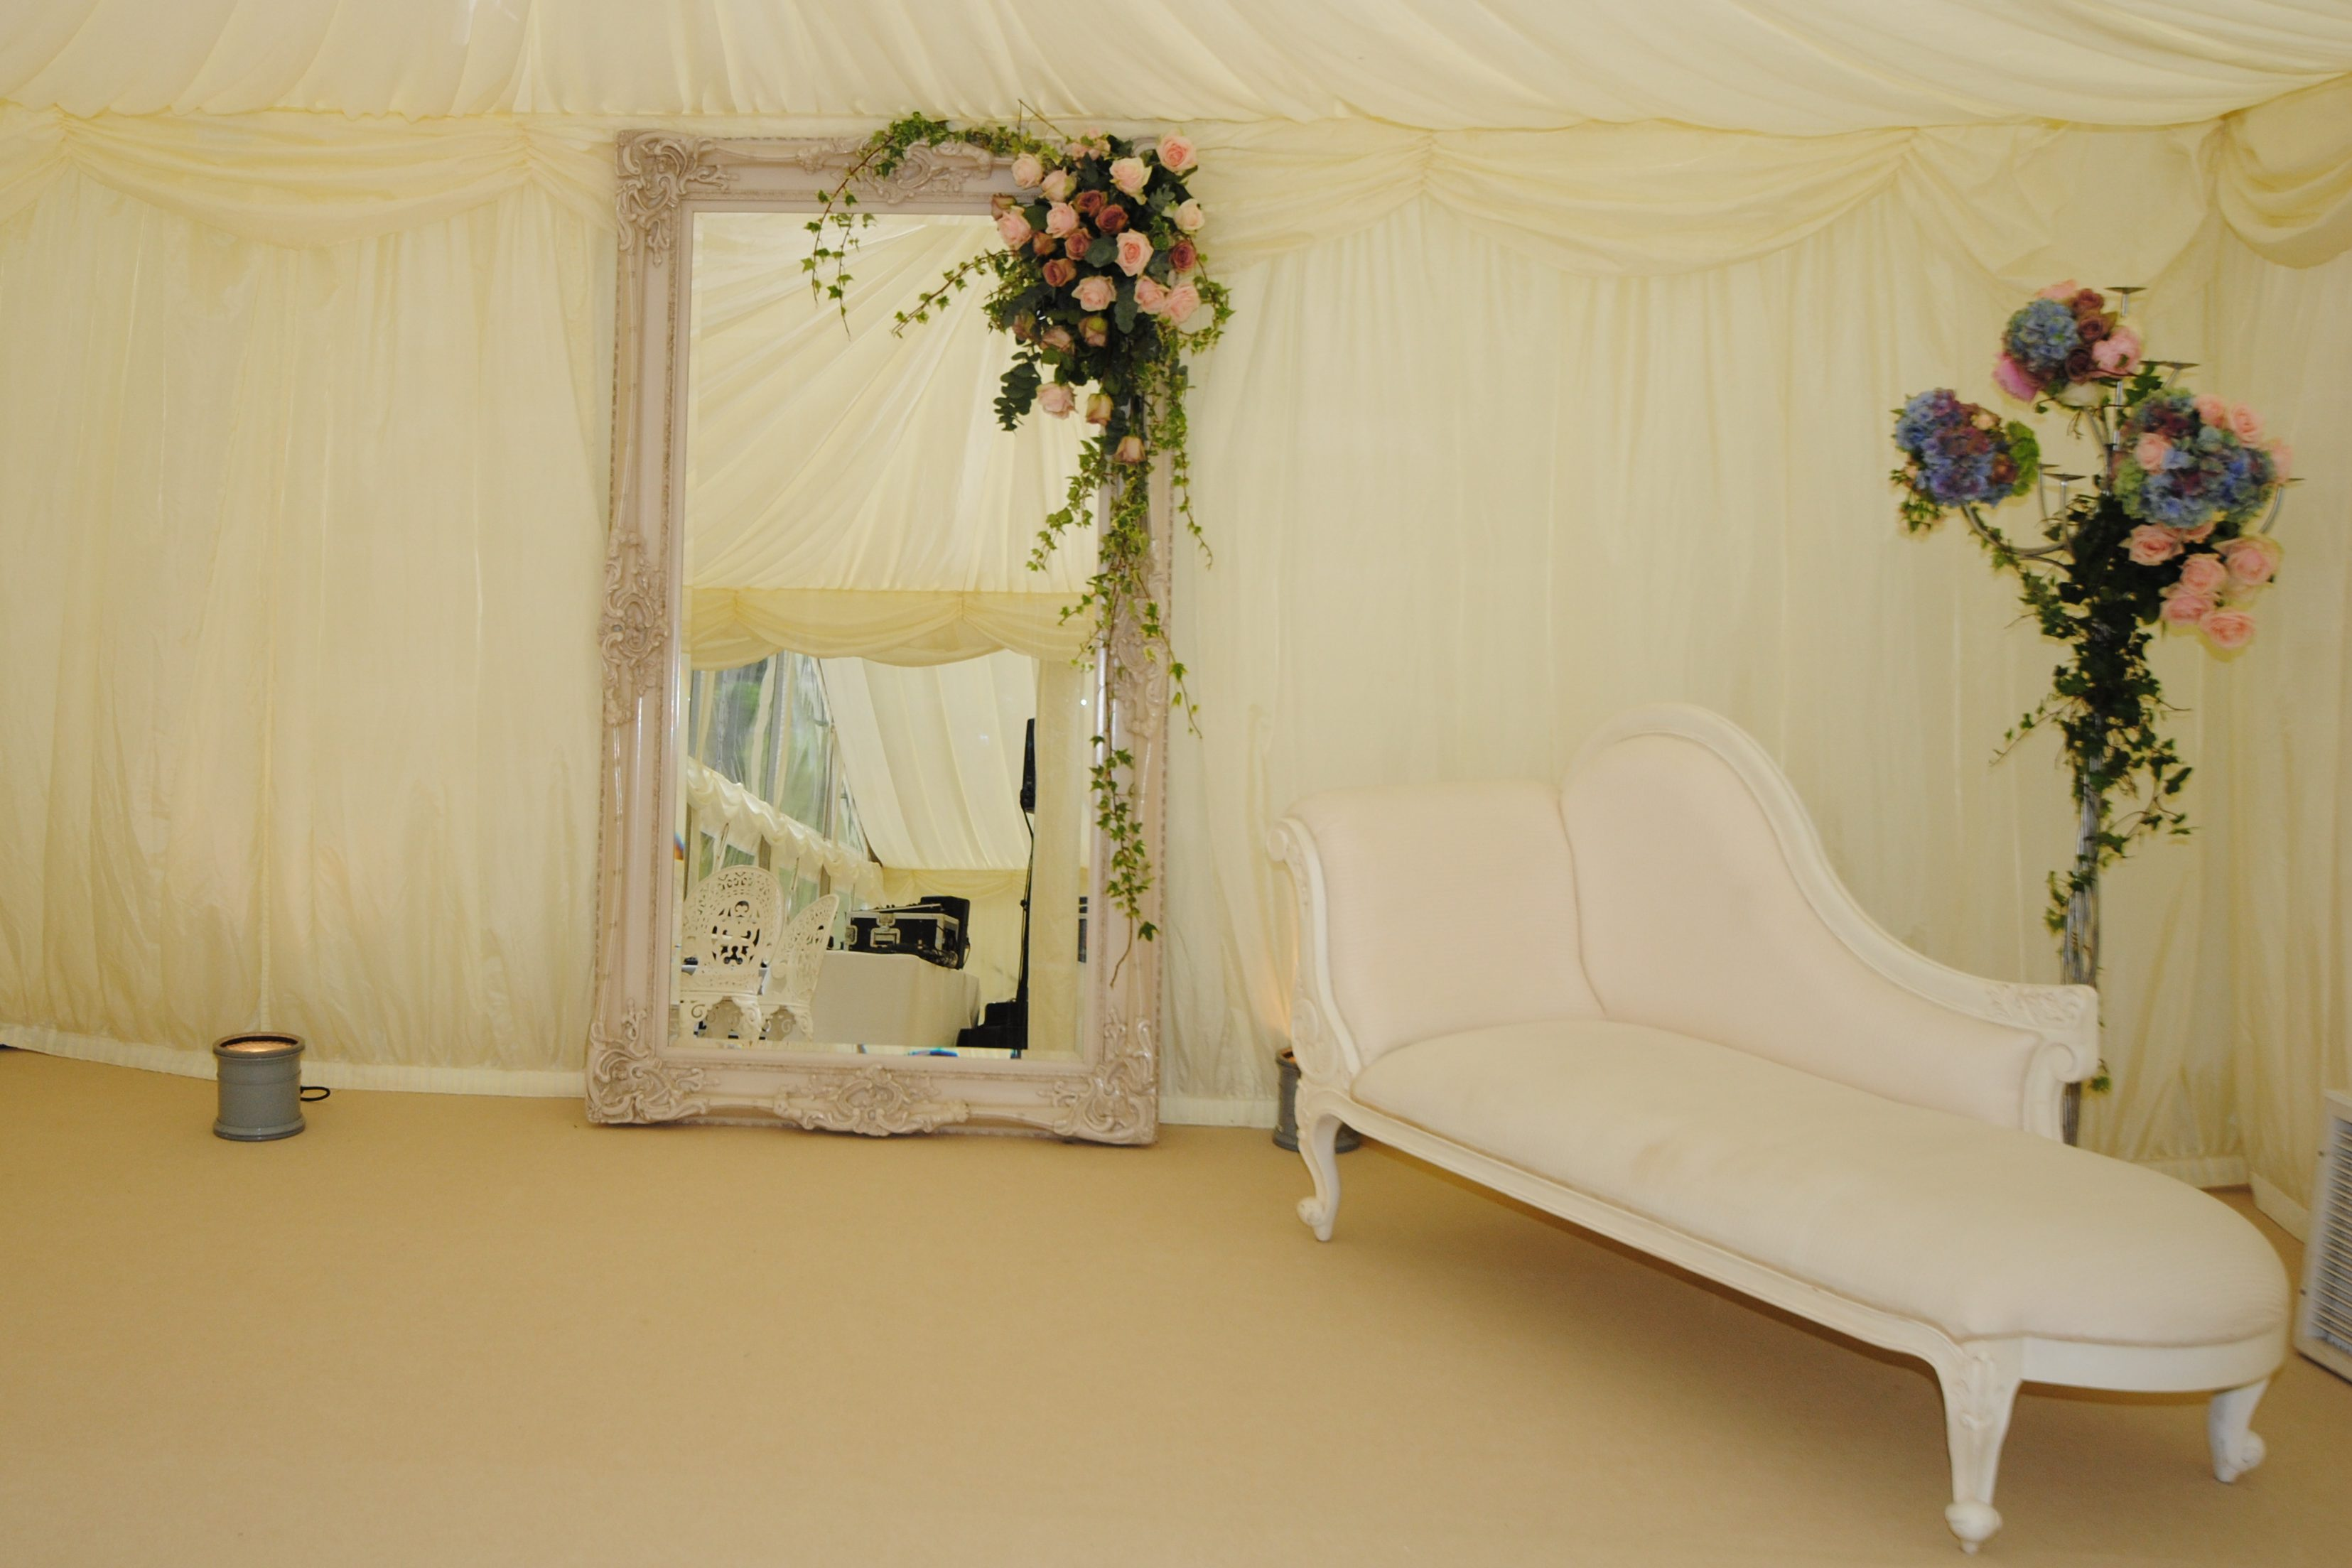 lounger in a wedding marquee